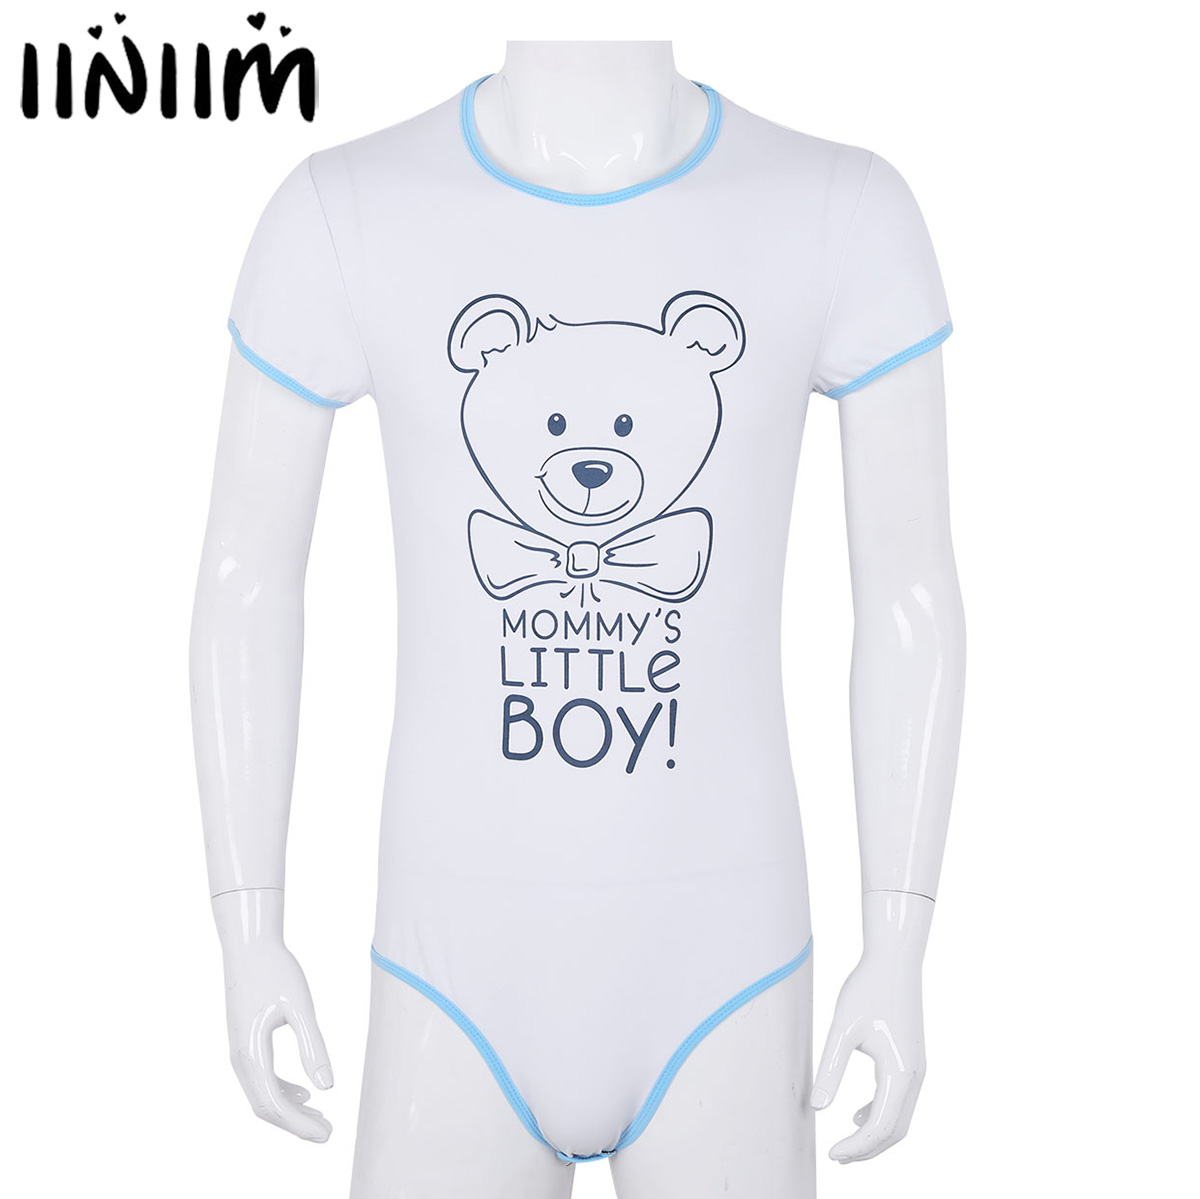 Male Mens Adult Baby & Diaper Lover Lingerie Bodystocking Snap Crotch Front Printed Sissy Gay Male Bodysuit Romper Pajamas